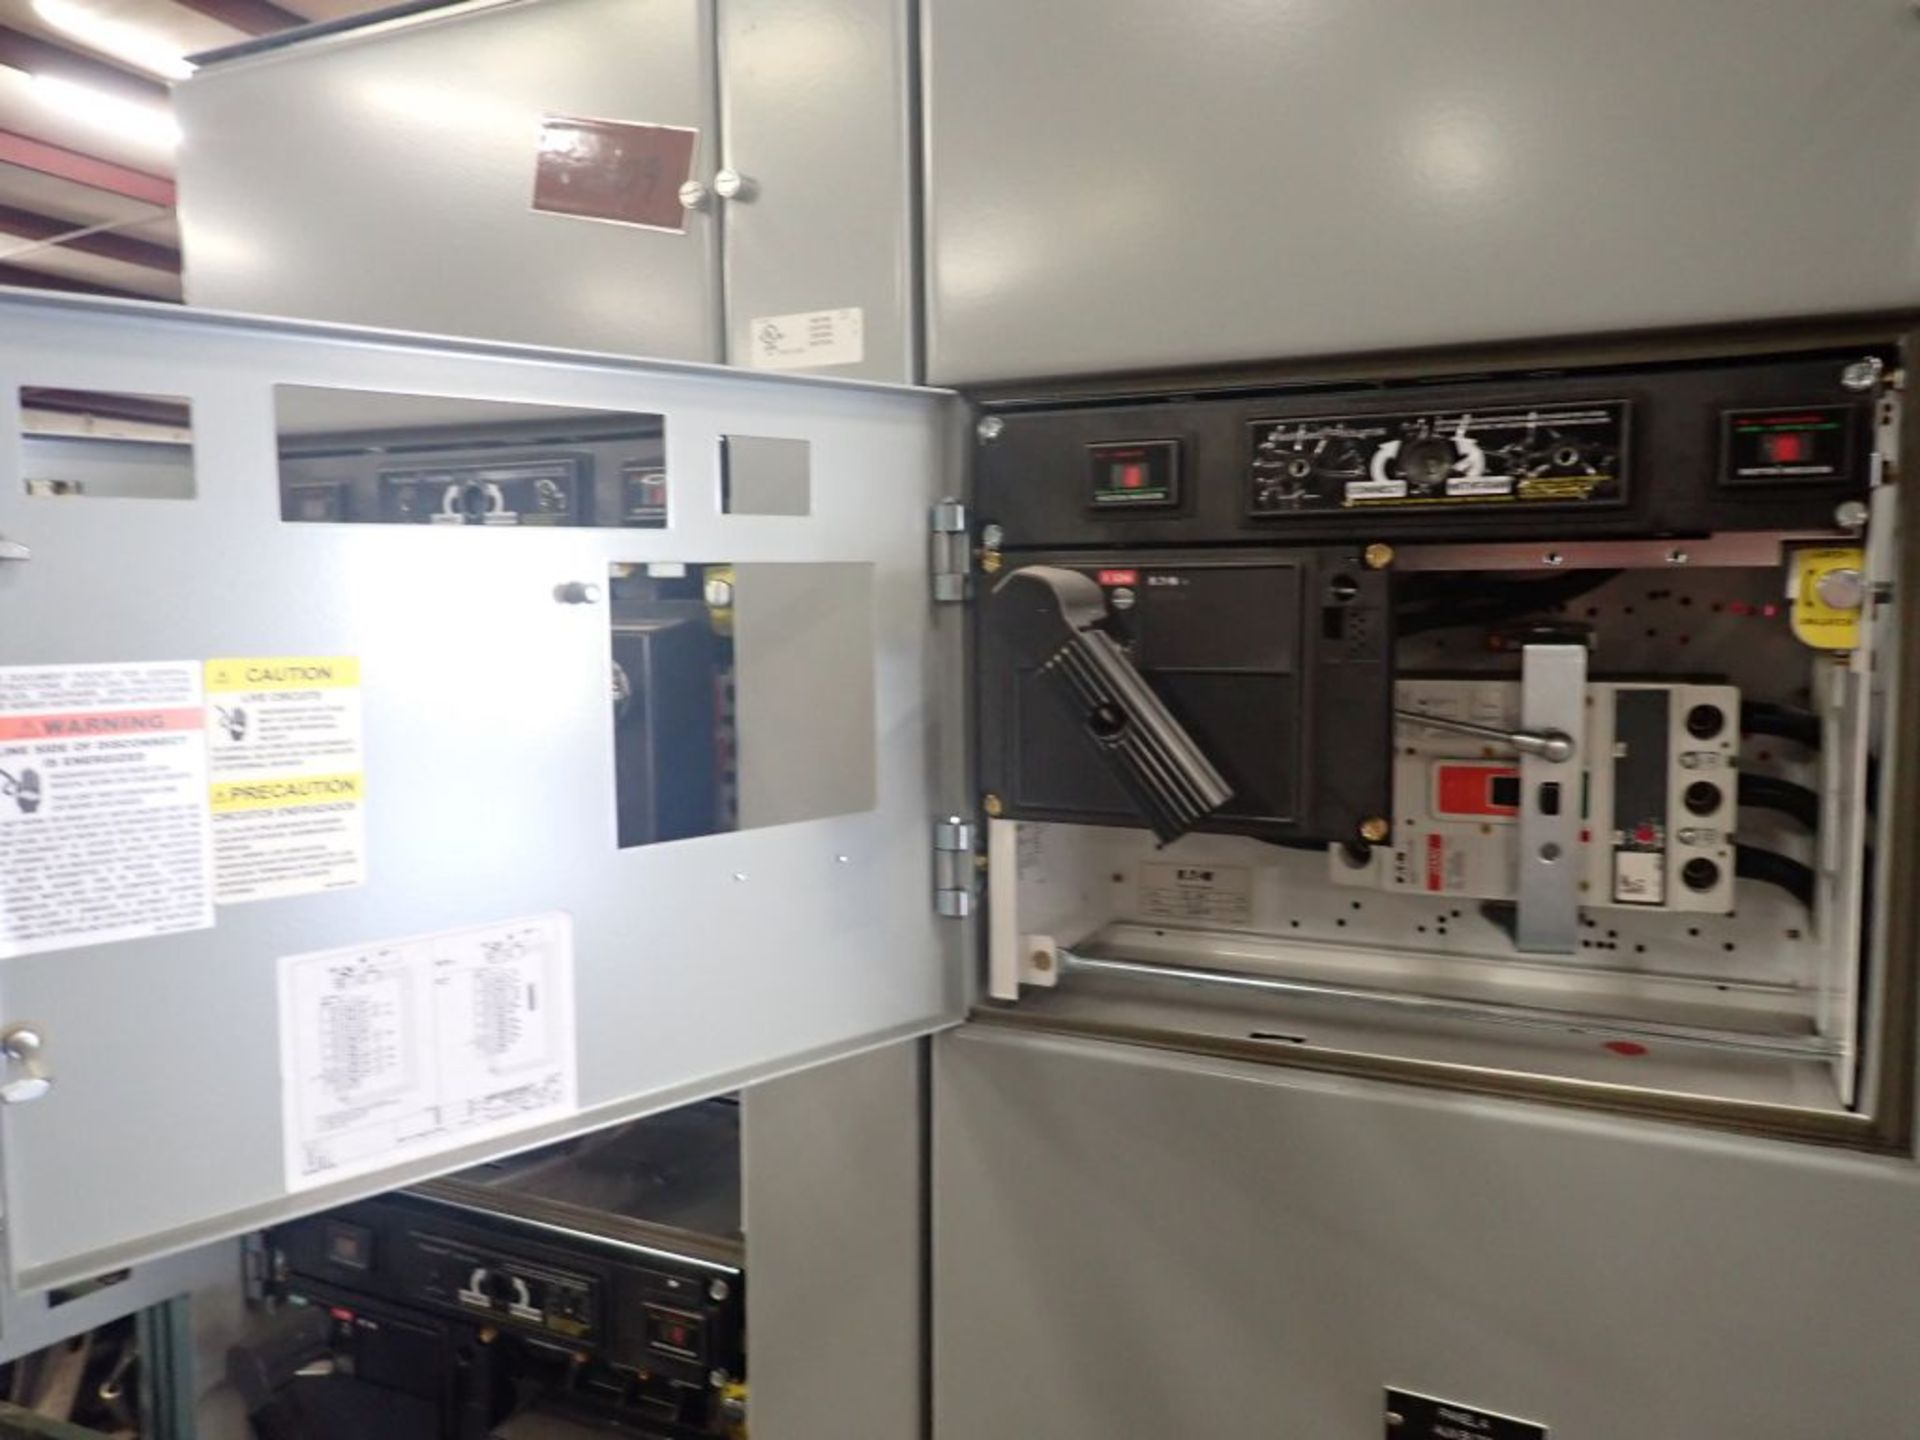 Eaton Freedom 2100 Series Motor Control Center   (2) F206-15A-10HP; (1) F206-30A-10HP; (1) FDRB- - Image 38 of 61